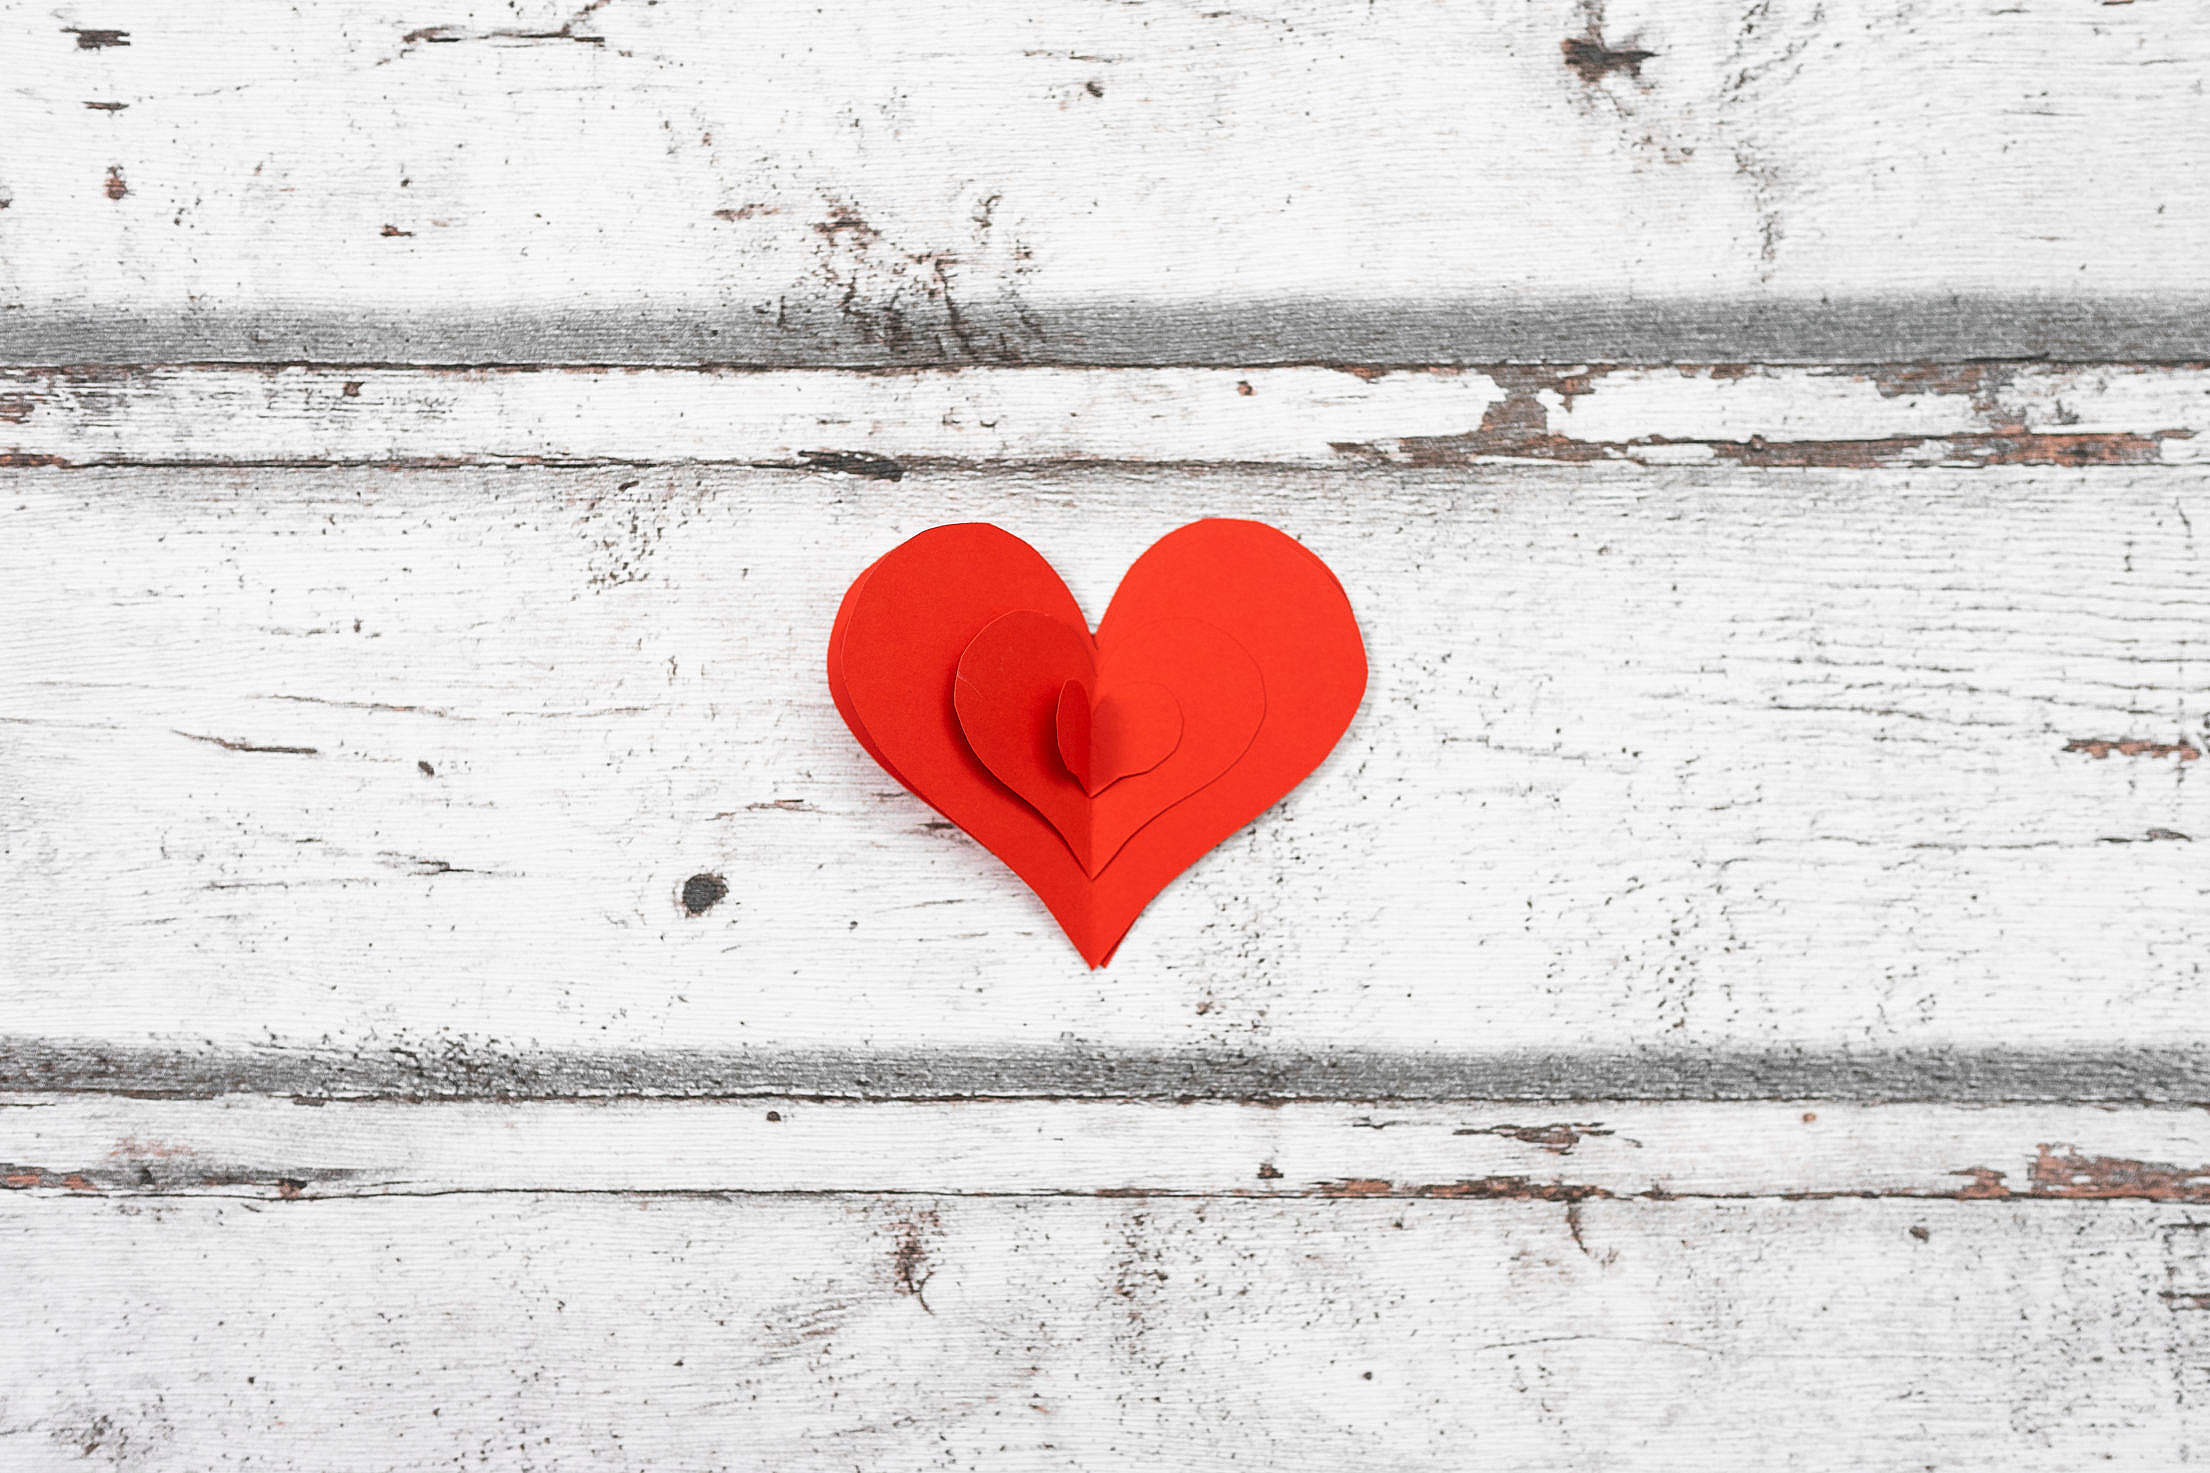 Red Paper Heart on a White Wooden Background Free Stock Photo